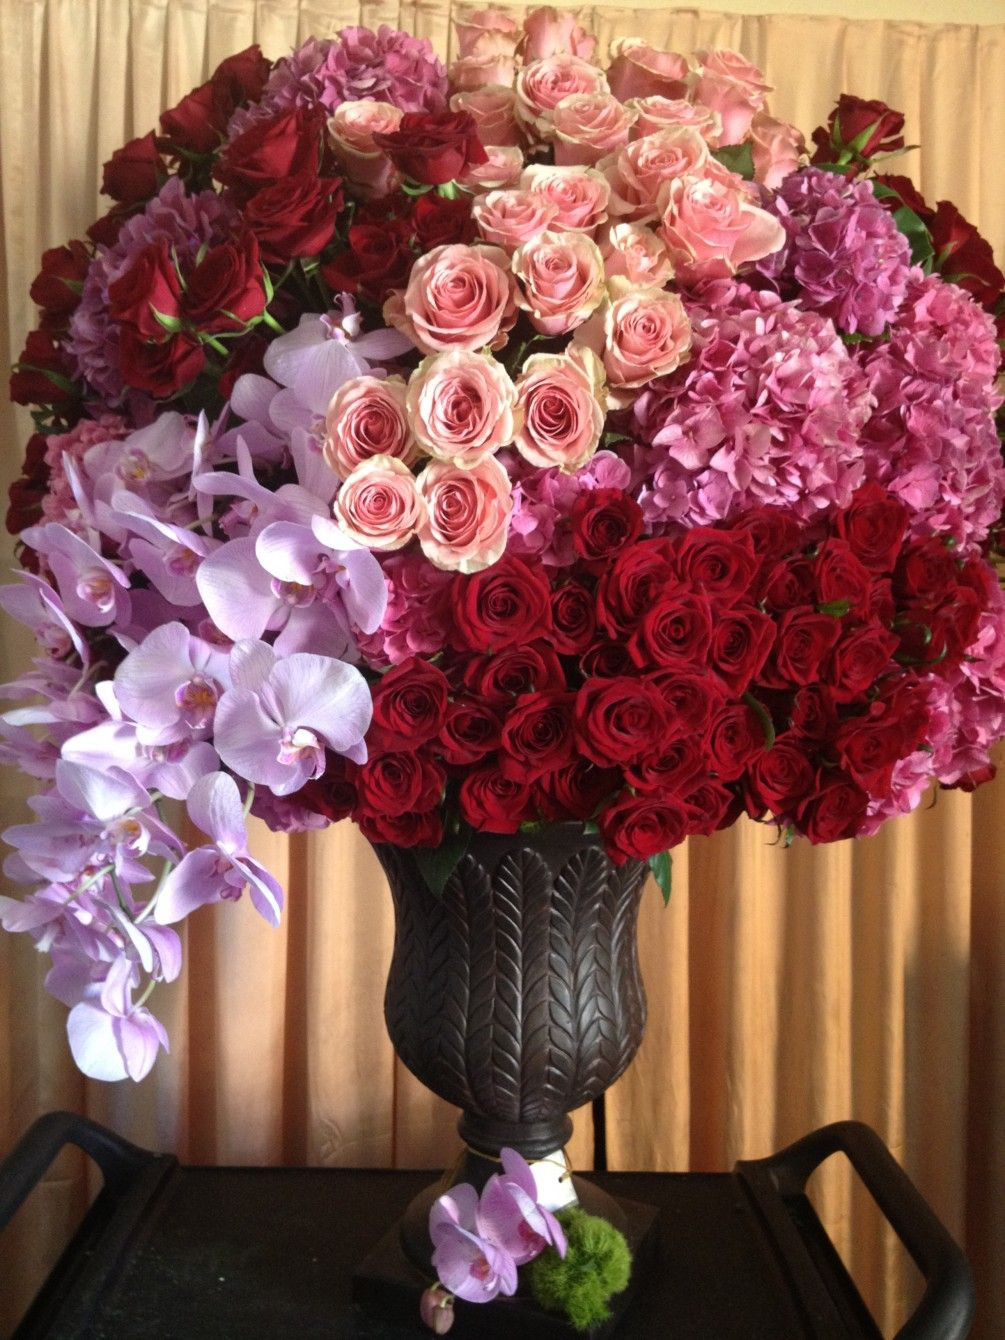 Huge arrangement with roses and hydrangeas